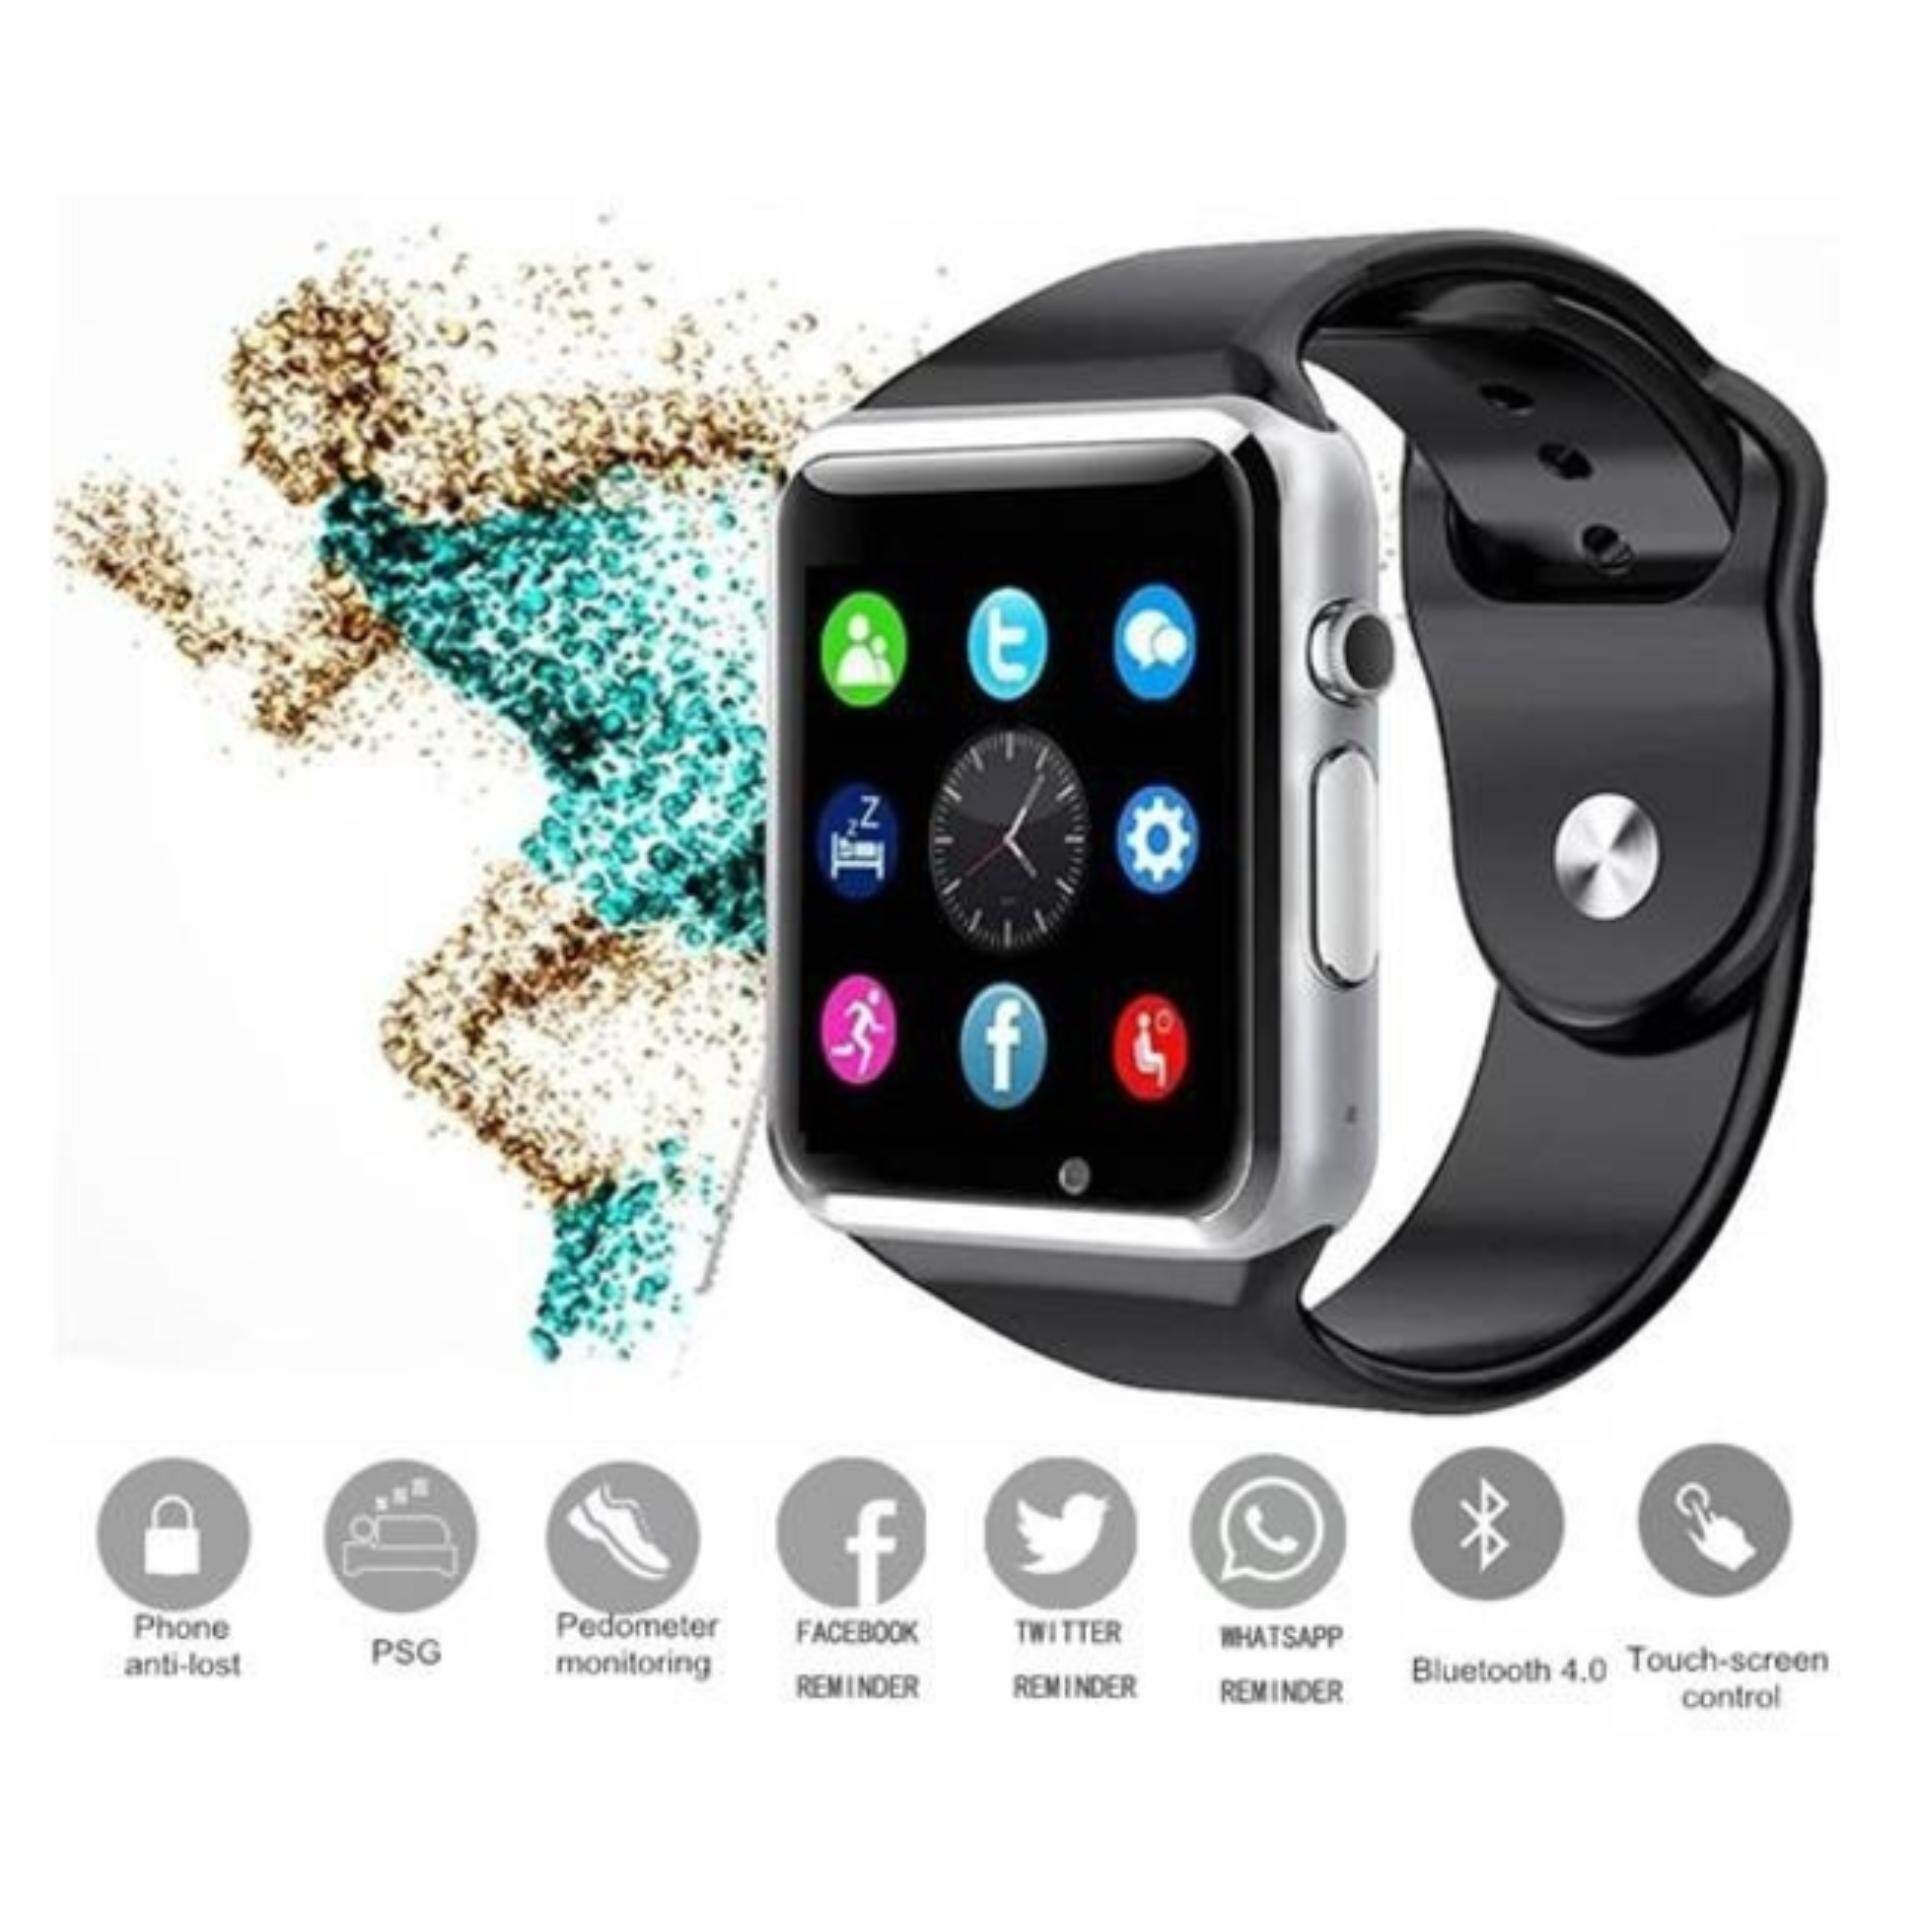 watches lazada sd micro connectivity best pedometer shop price malaysia sim camera phone in watch smart with sport bluetooth wearable memory i